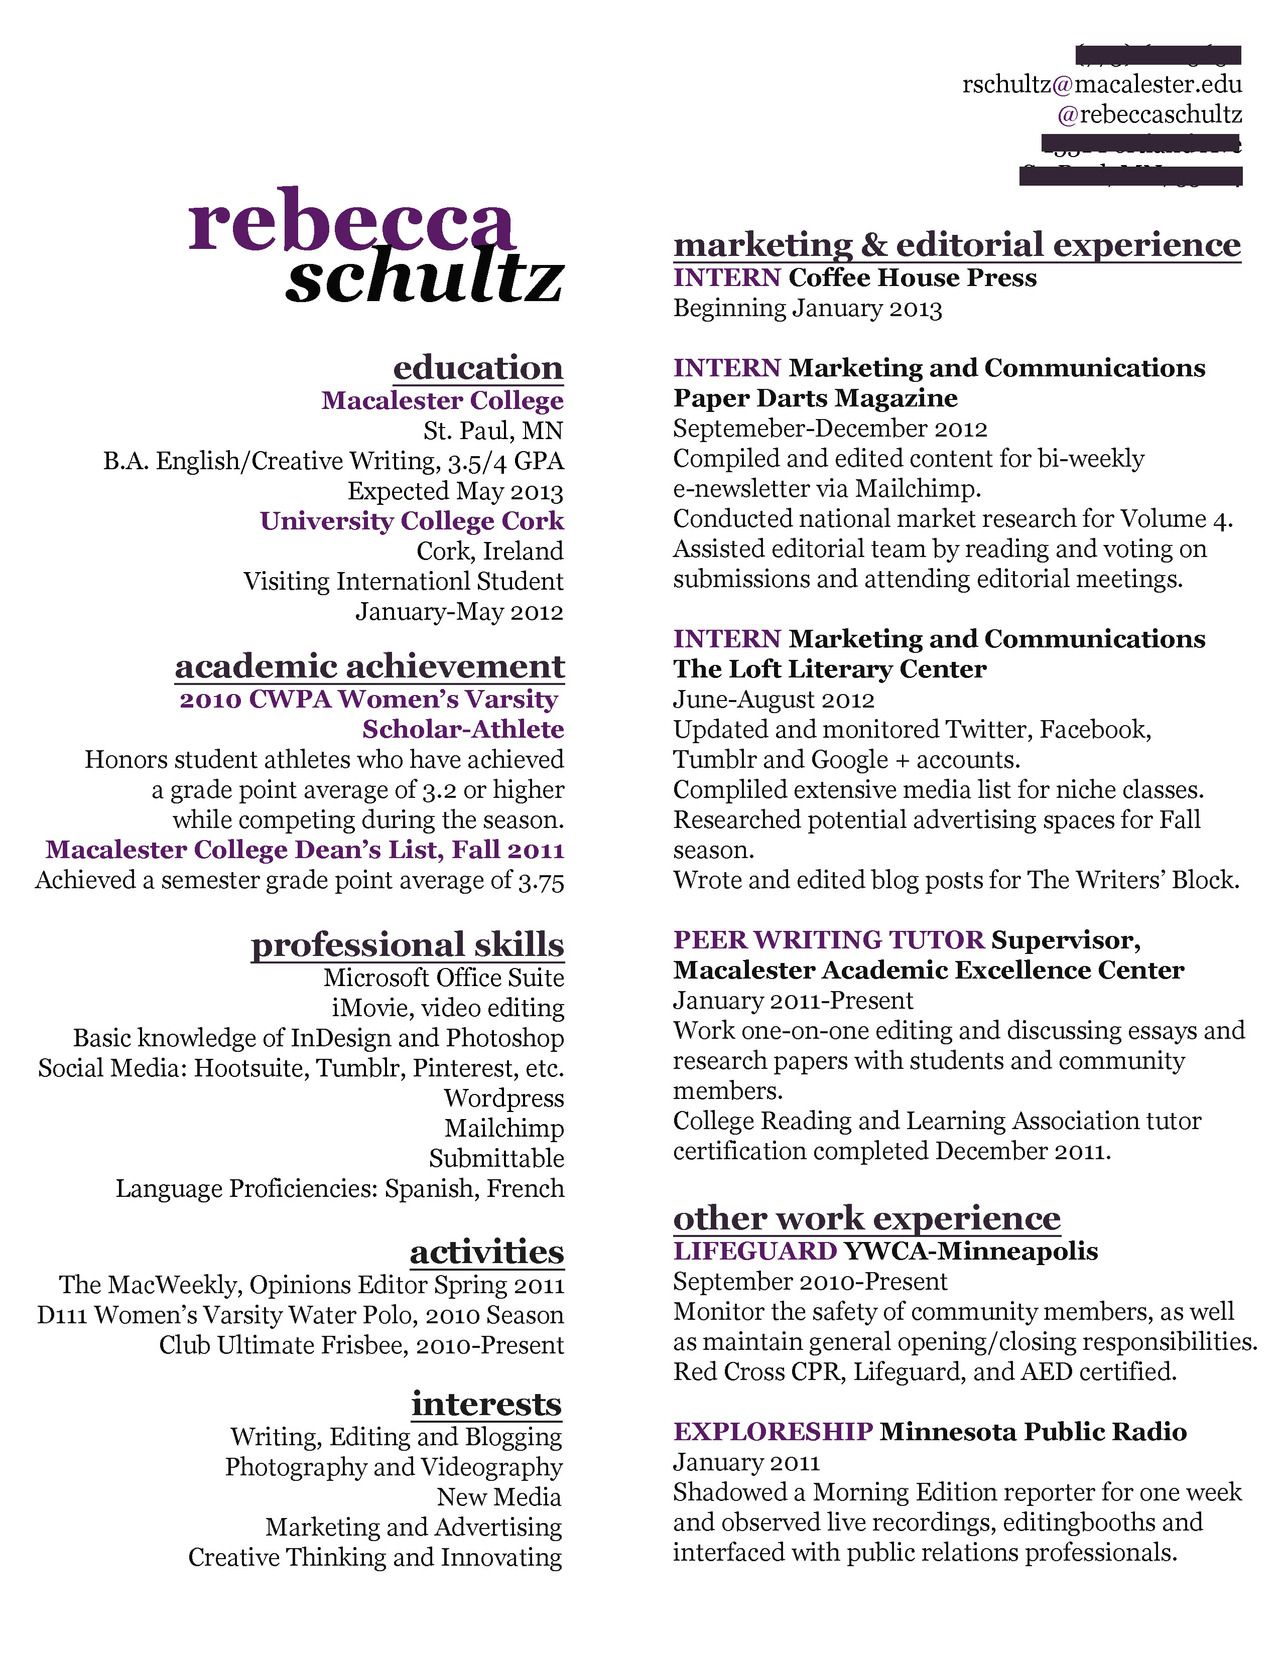 creative resume writer resume entry level resume marketing creative resume writer resume entry level resume marketing resume advertising resume middot makeup artist